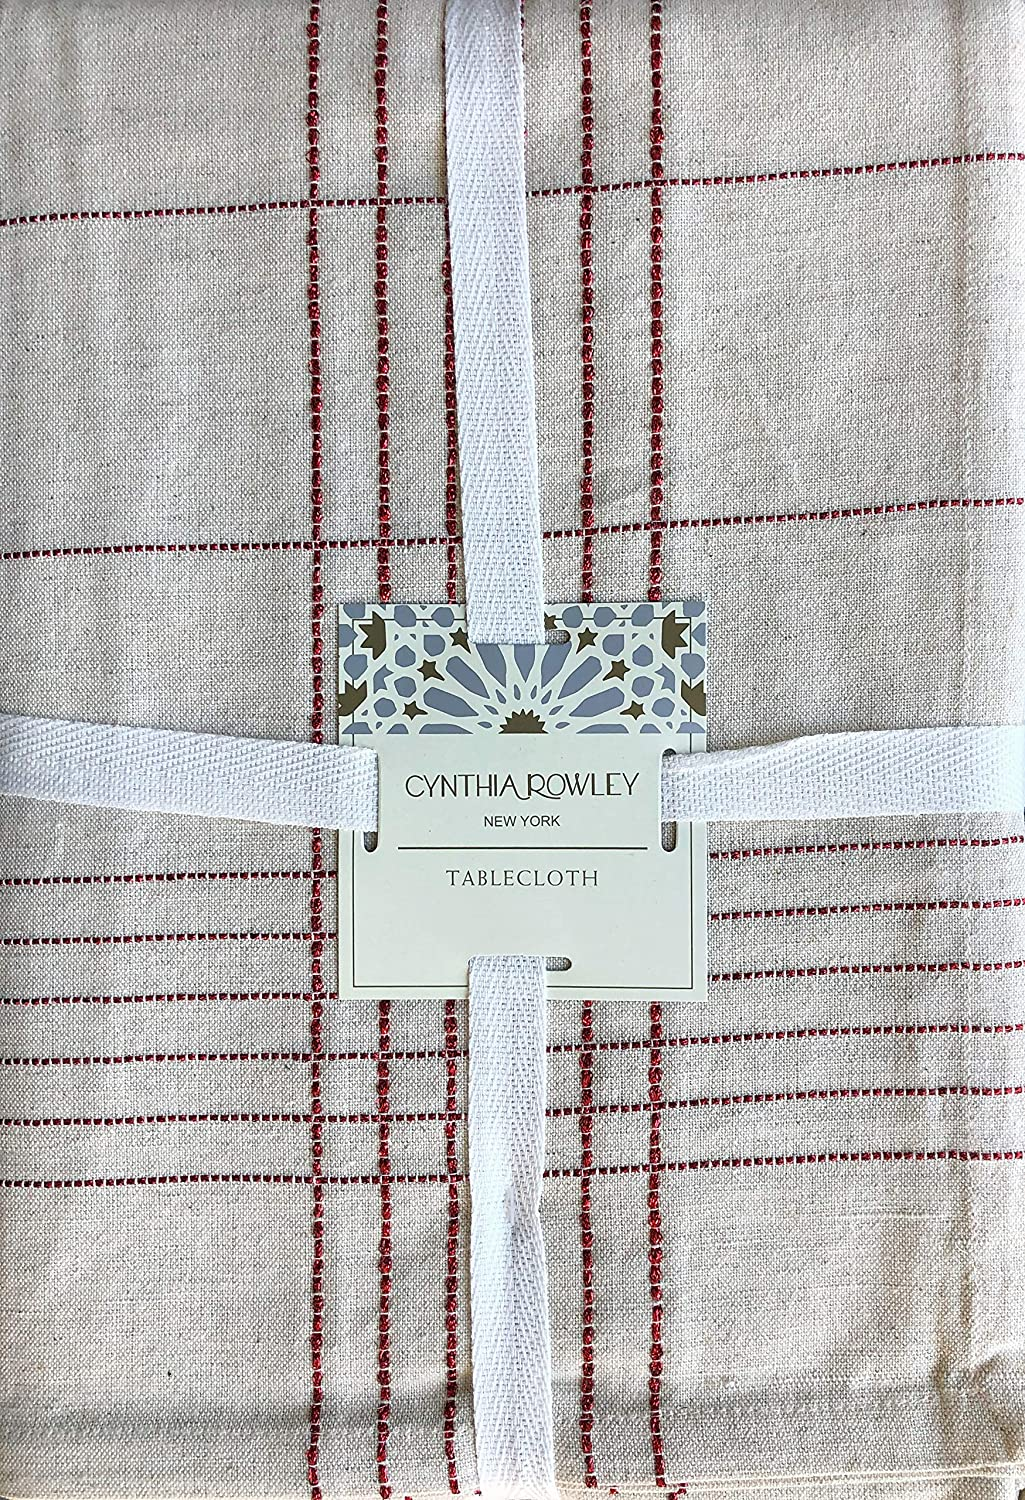 Cynthia Rowley New York Holiday Fabric Tablecloth Thin Metallic Red Stripes in a Crosshatch Pattern on a Natural Tan Ecru Background - Kashi Cotton Flax, 60 Inches by 108 Inches